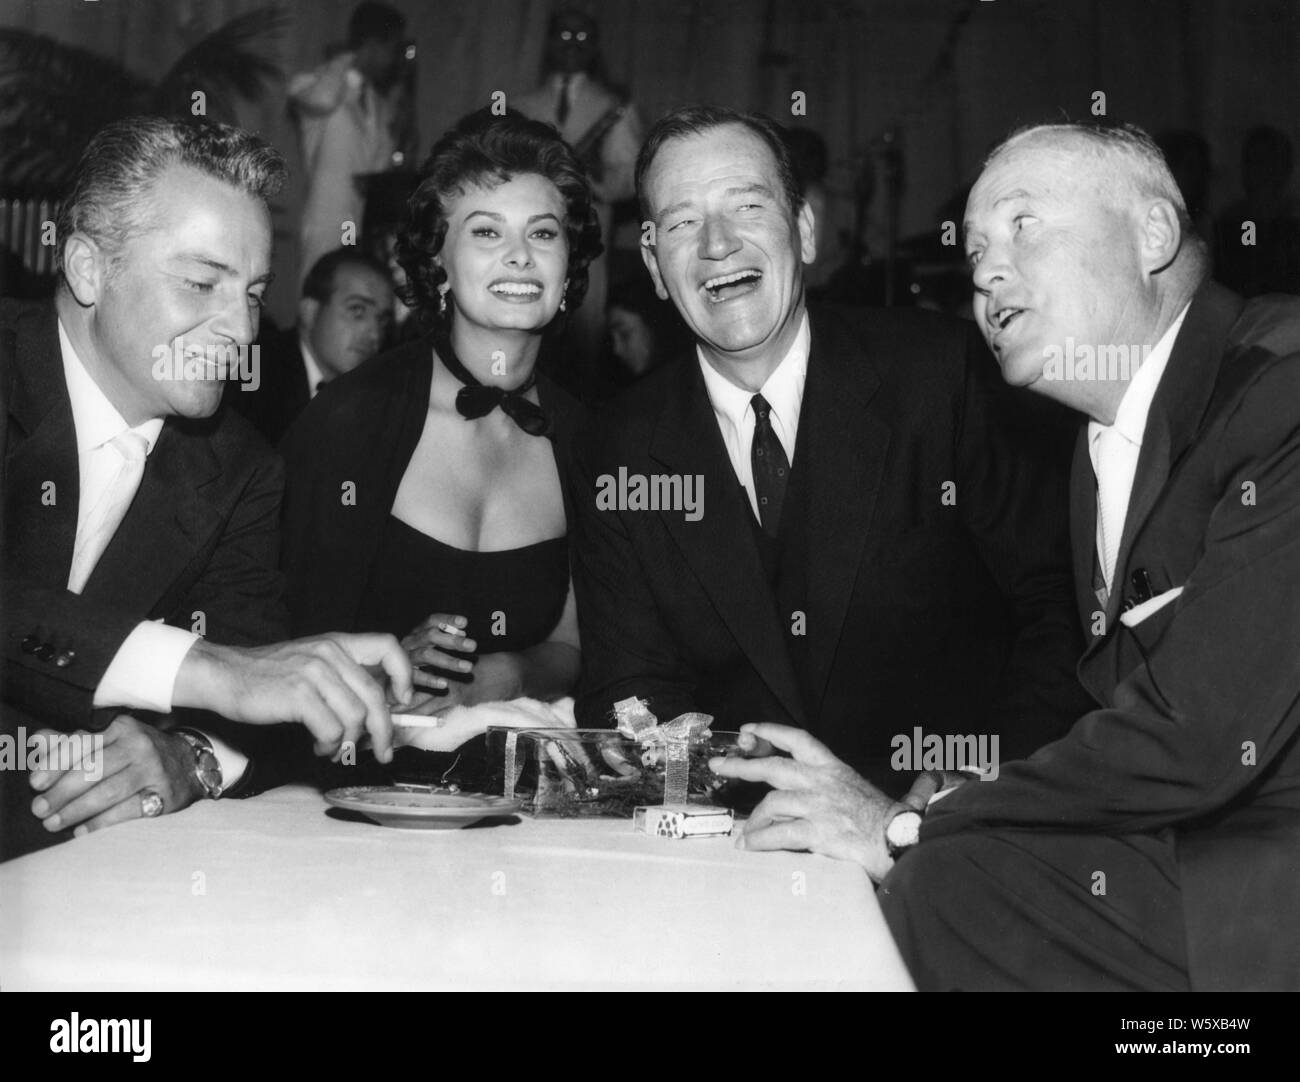 ROSSANO BRAZZI SOPHIA LOREN JOHN WAYNE and director HENRY HATHAWAY candid during filming LEGEND OF THE LOST 1957 Batjac Productions / Dear Films Produzione / United Artists Stock Photo